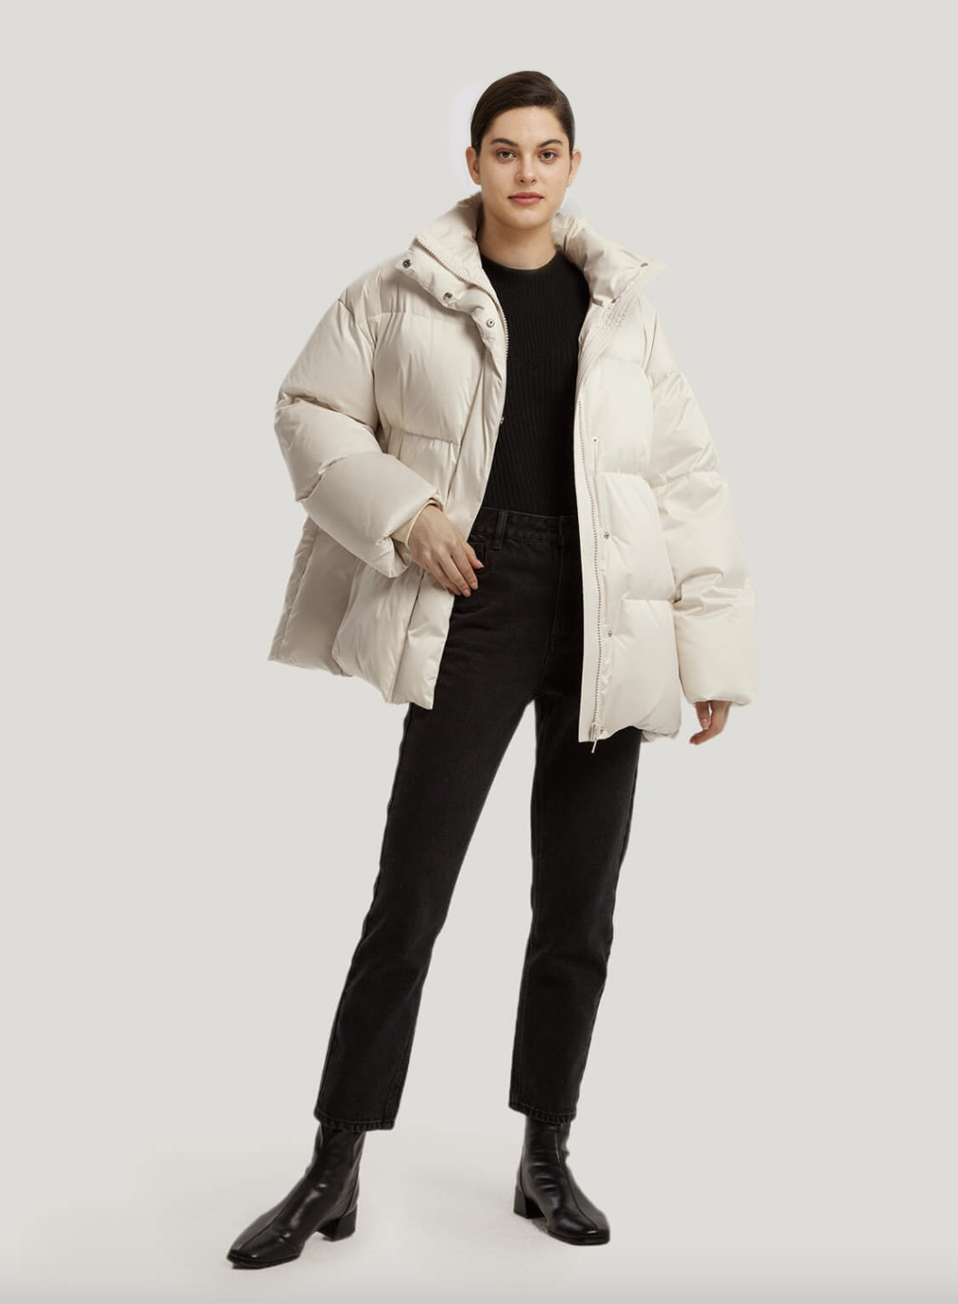 Nap Matte Quilted Puffer Jacket in white with black pants and black leather boots